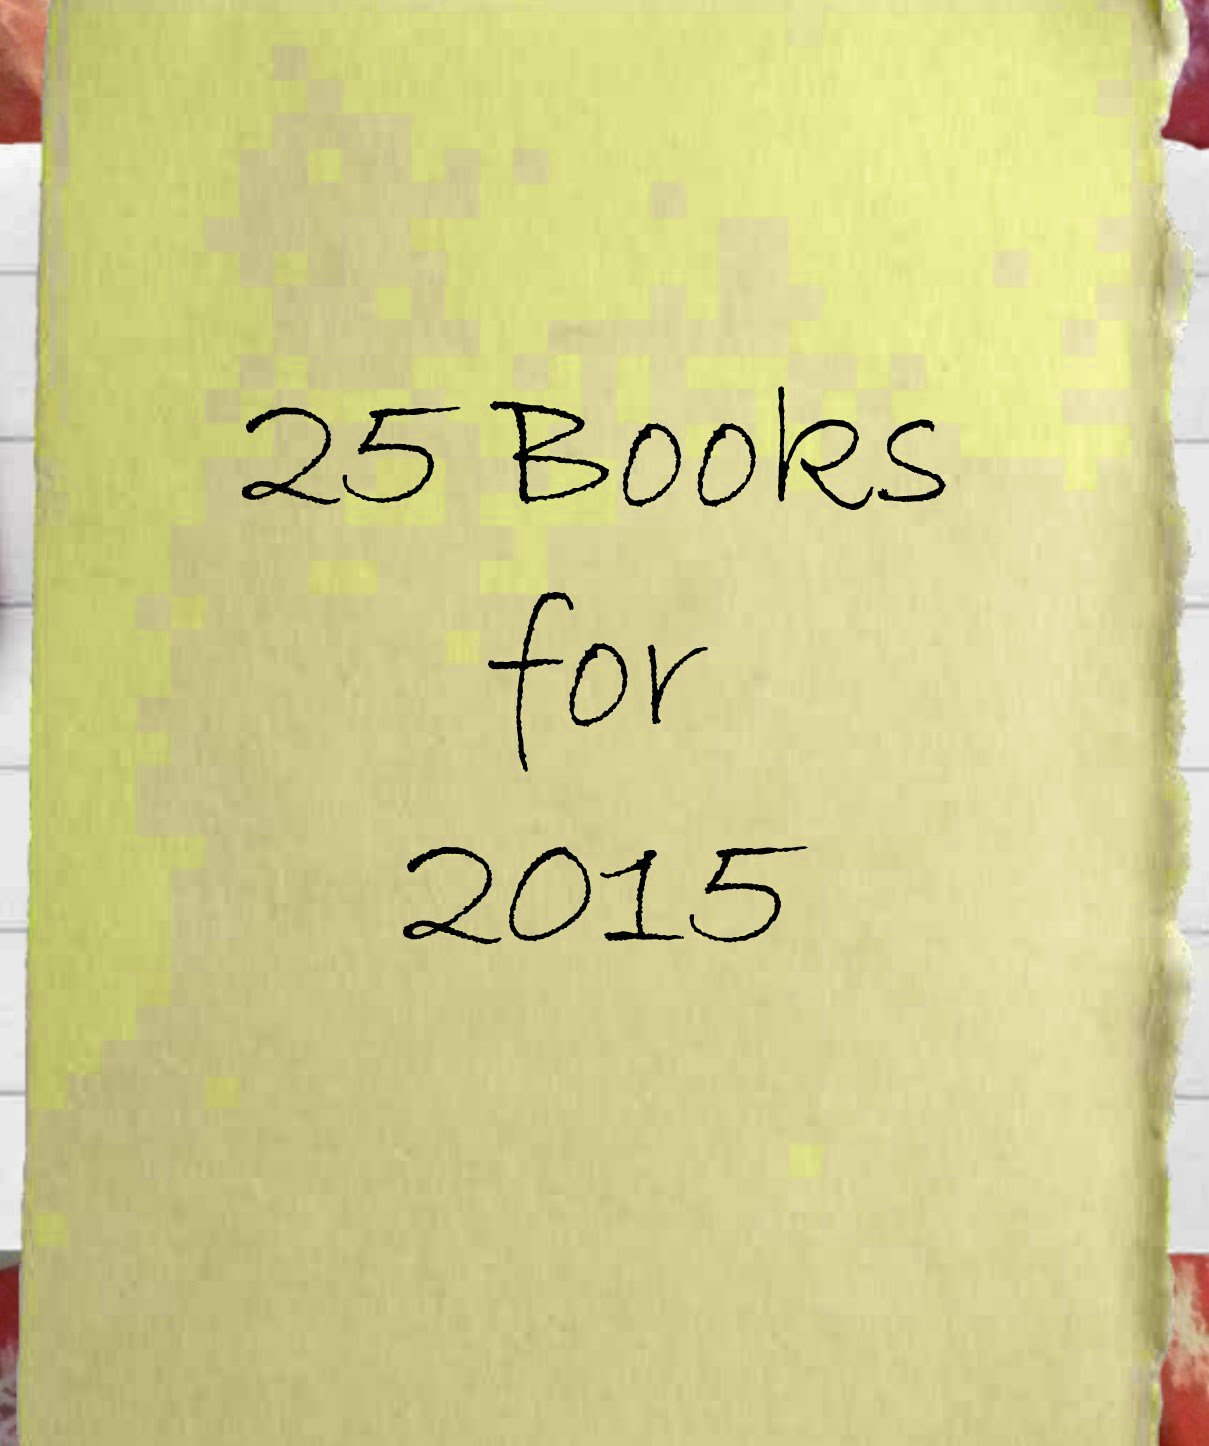 25 Books for 2015